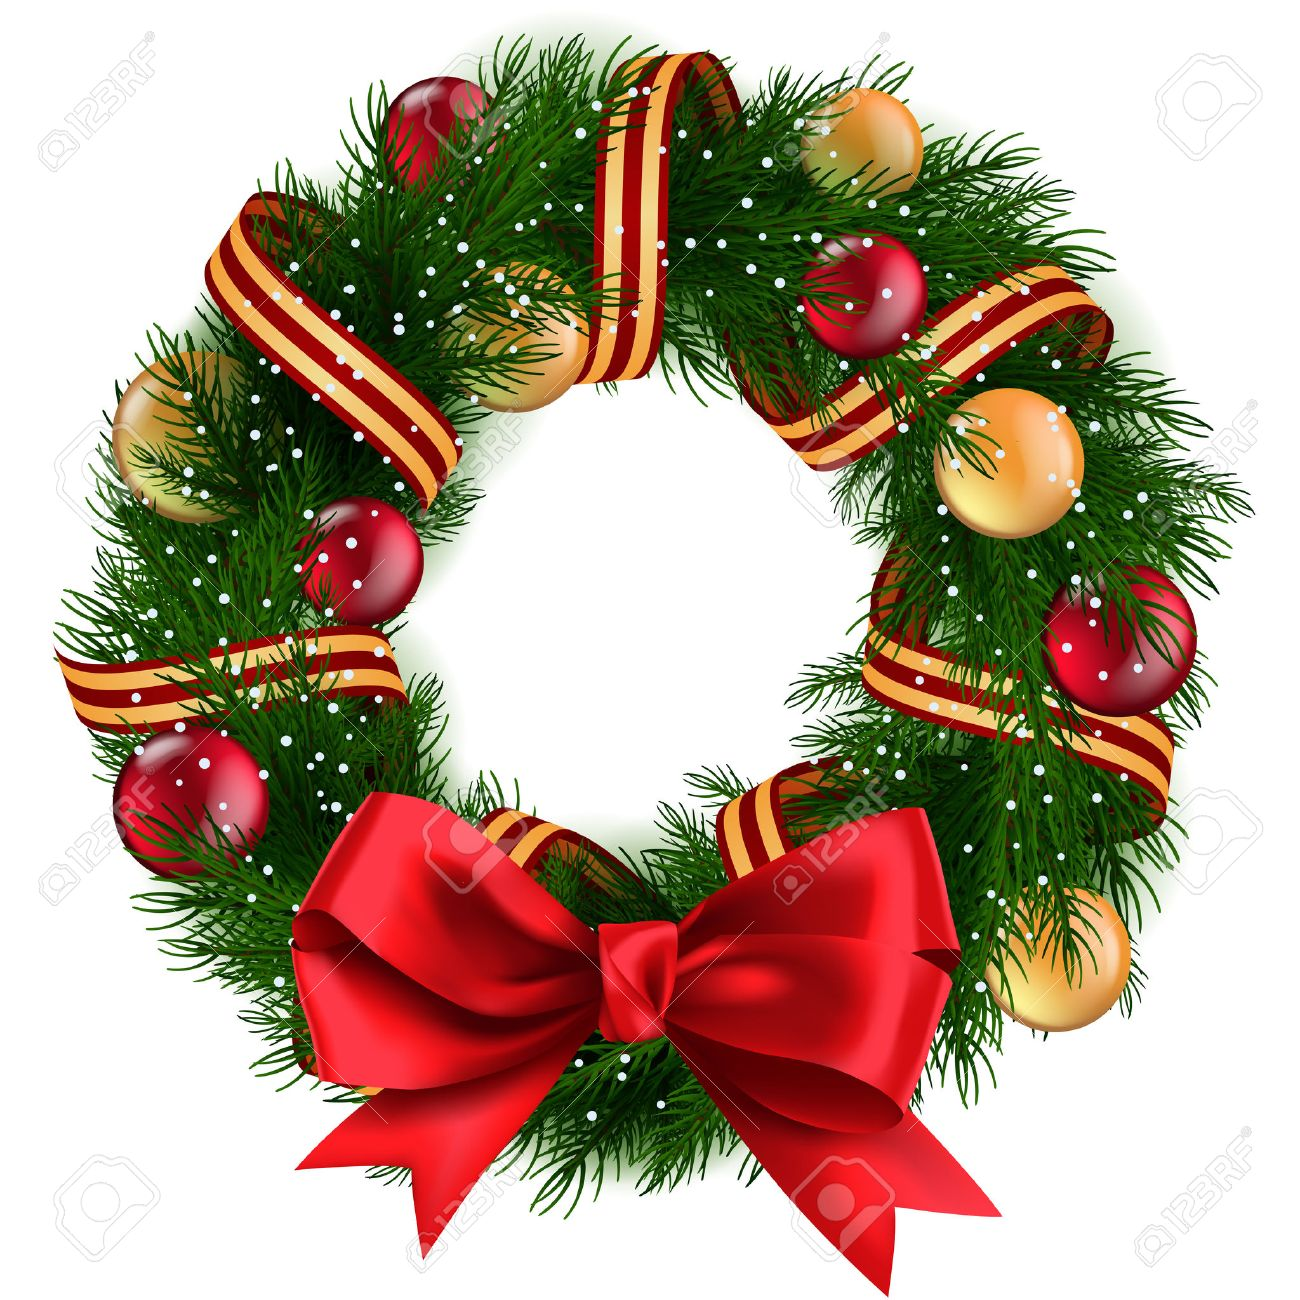 Very best Christmas Wreath With Ribbons, Balls And Bow Isolated Royalty Free  KI86